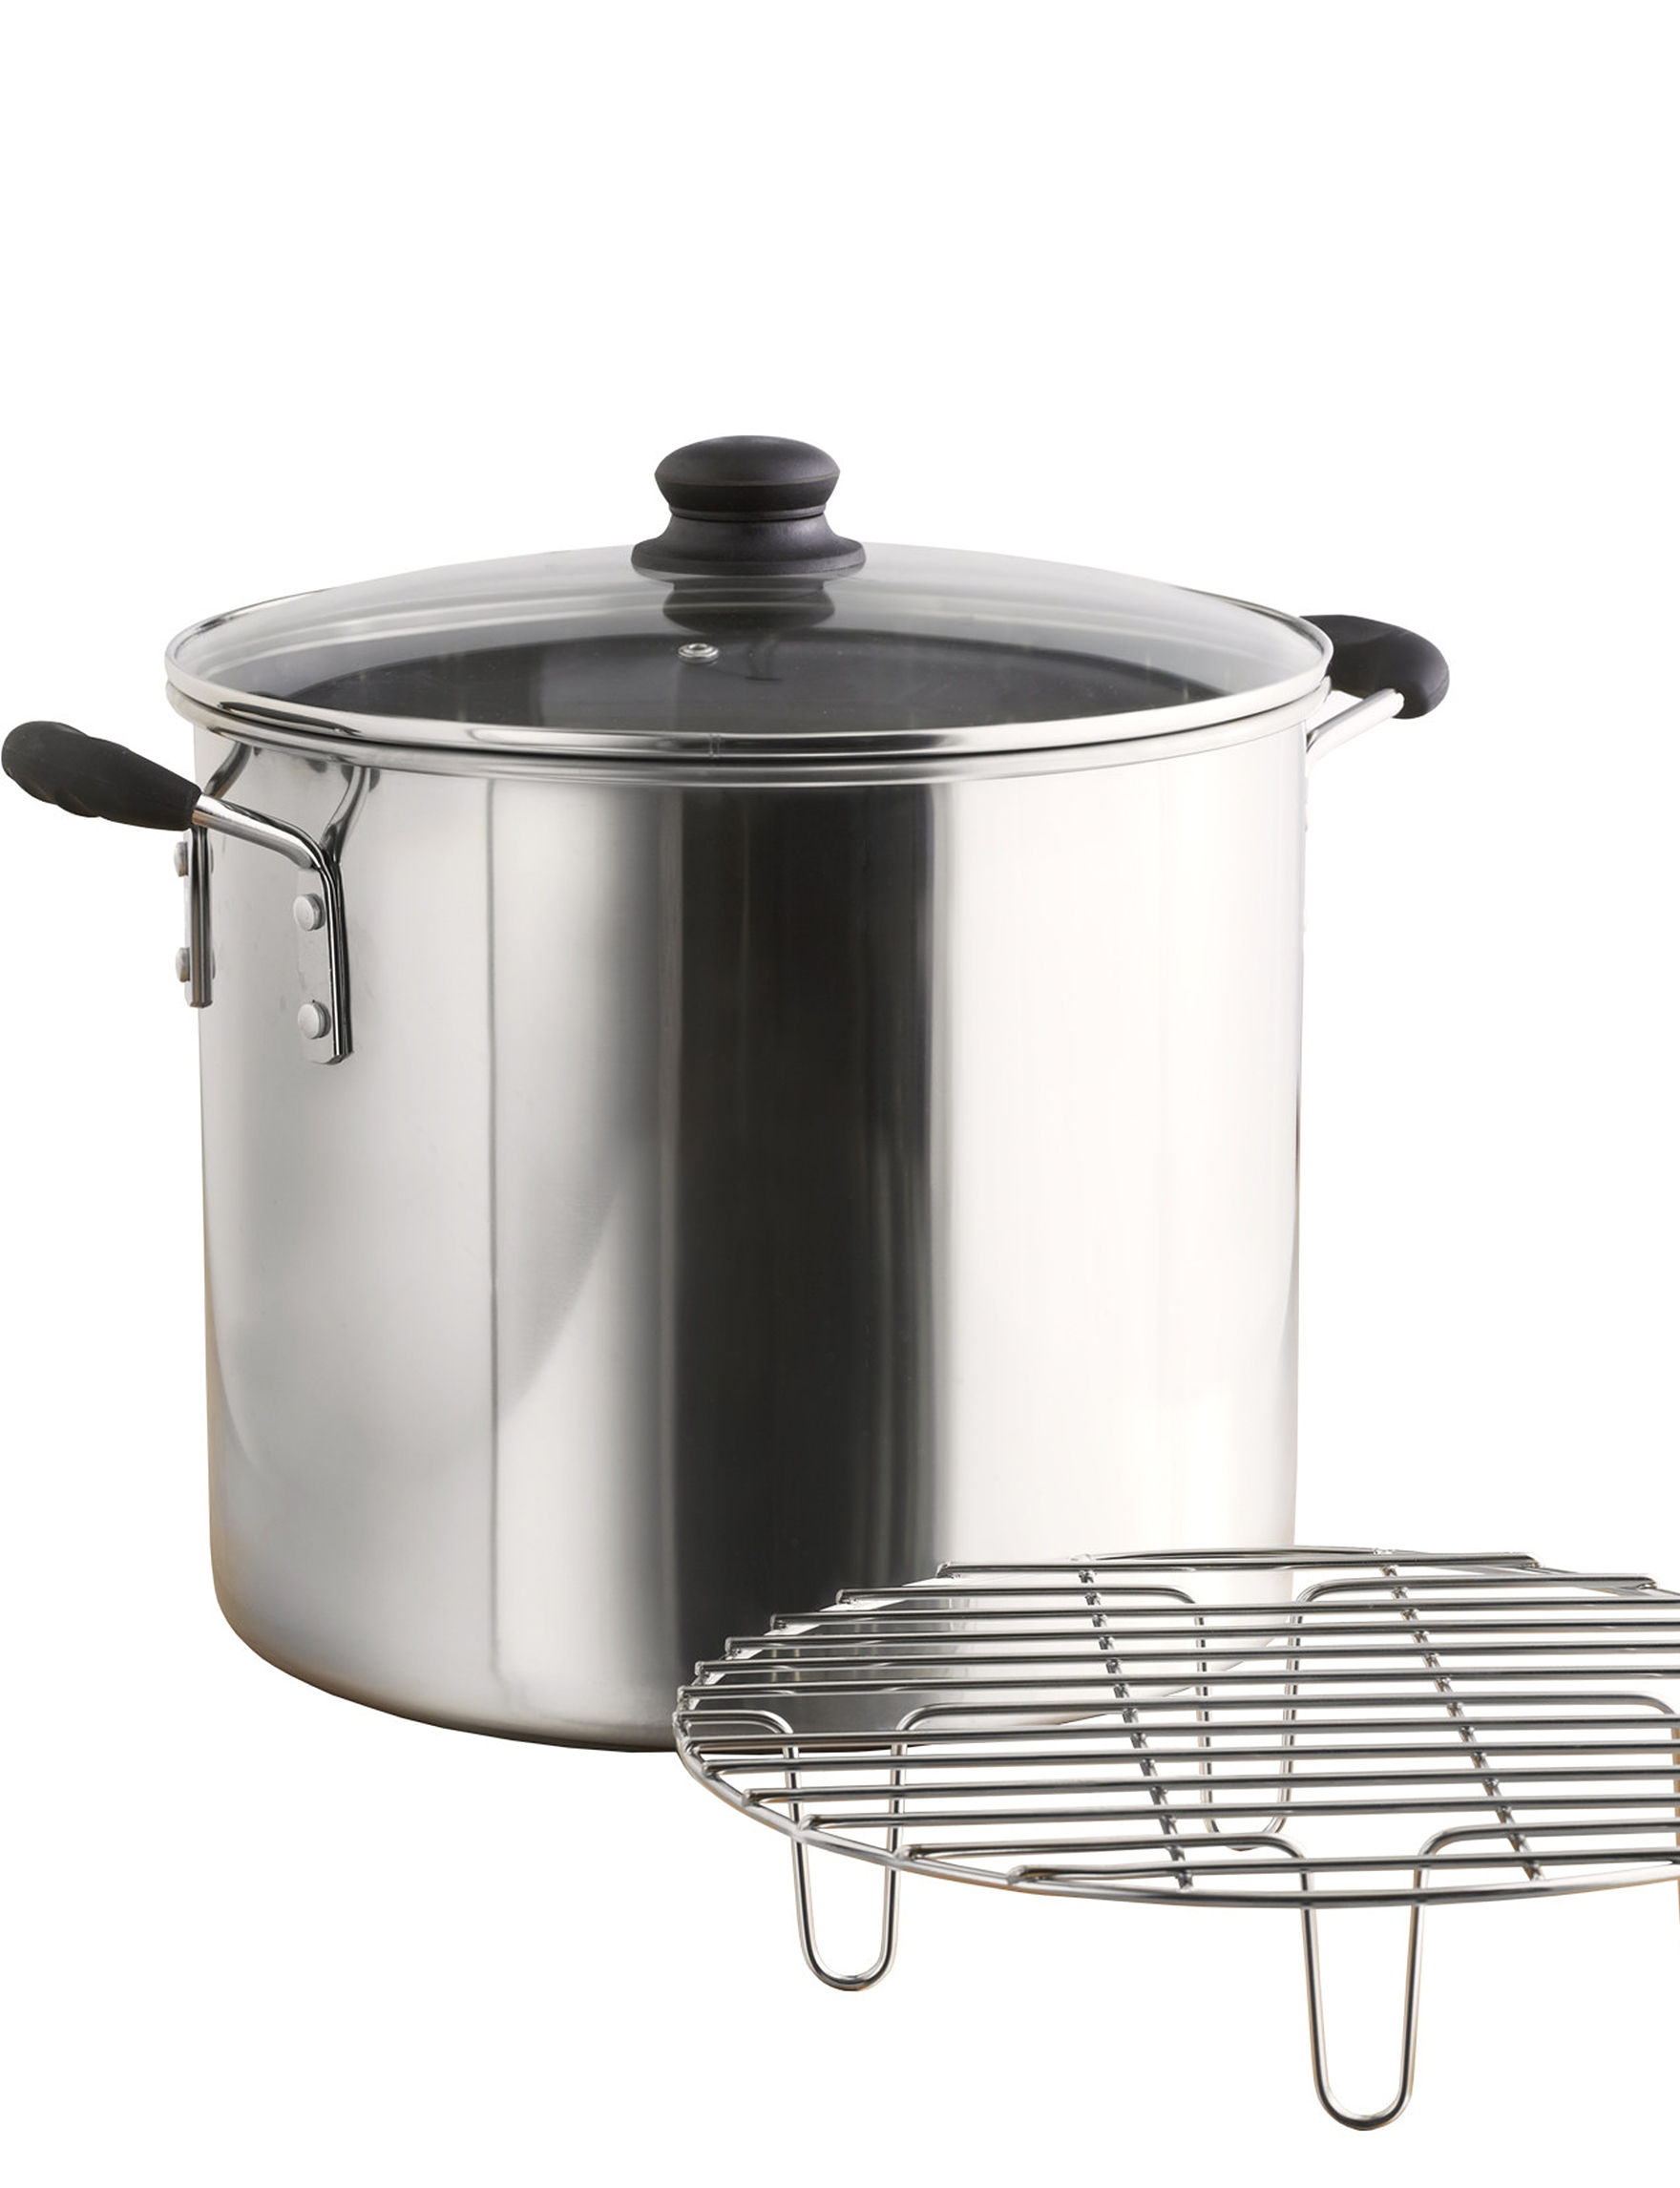 IMUSA Silver Double Boilers & Steamers Cookware